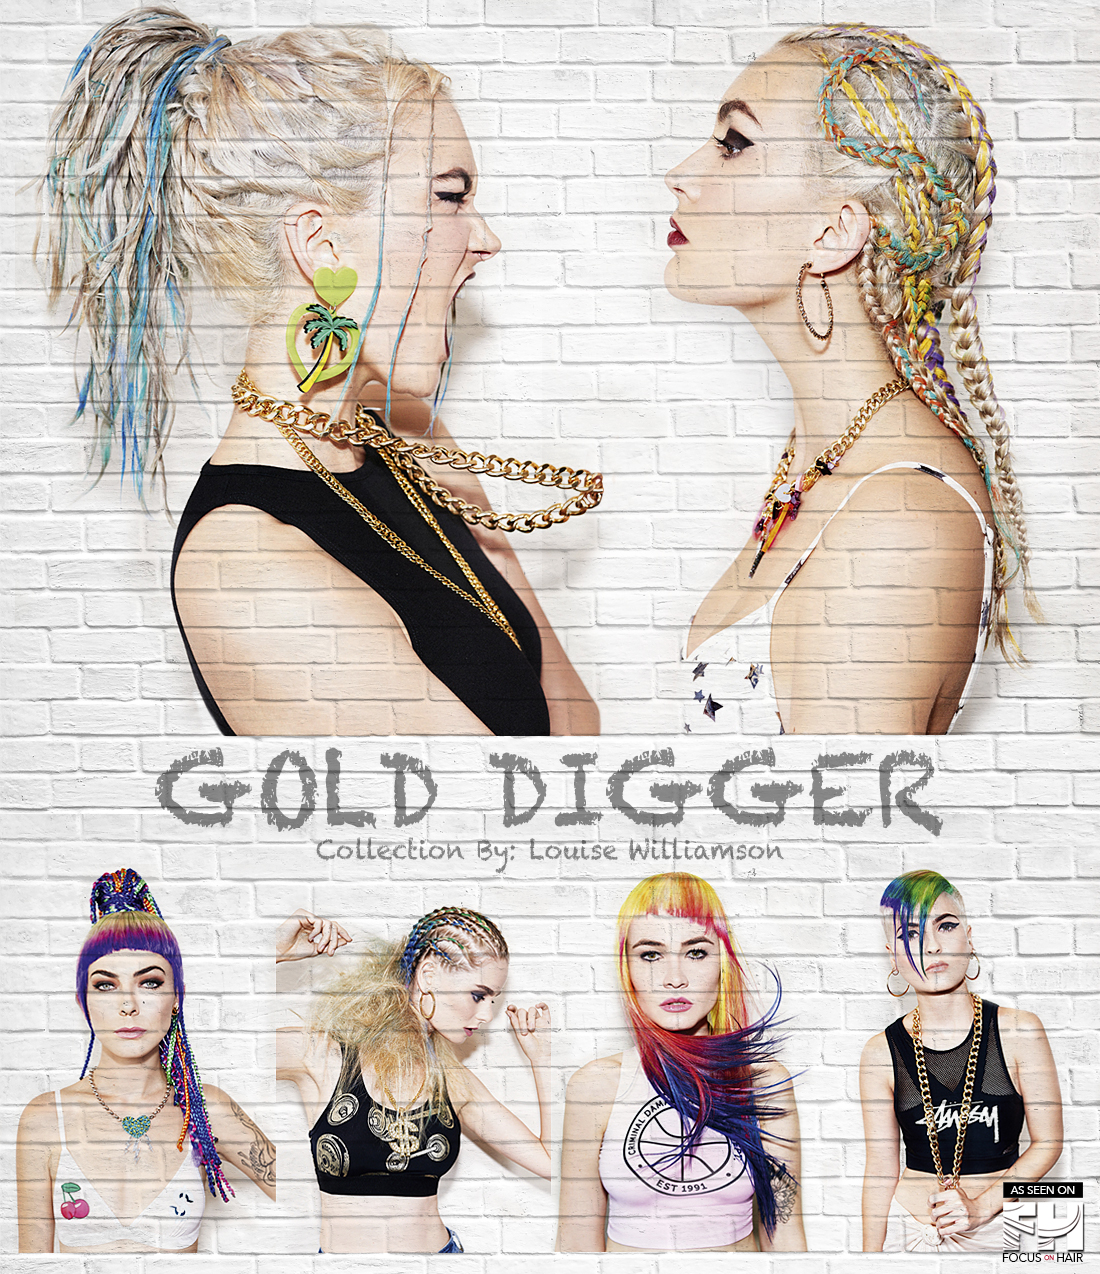 Gold Digger by Louise Williamson